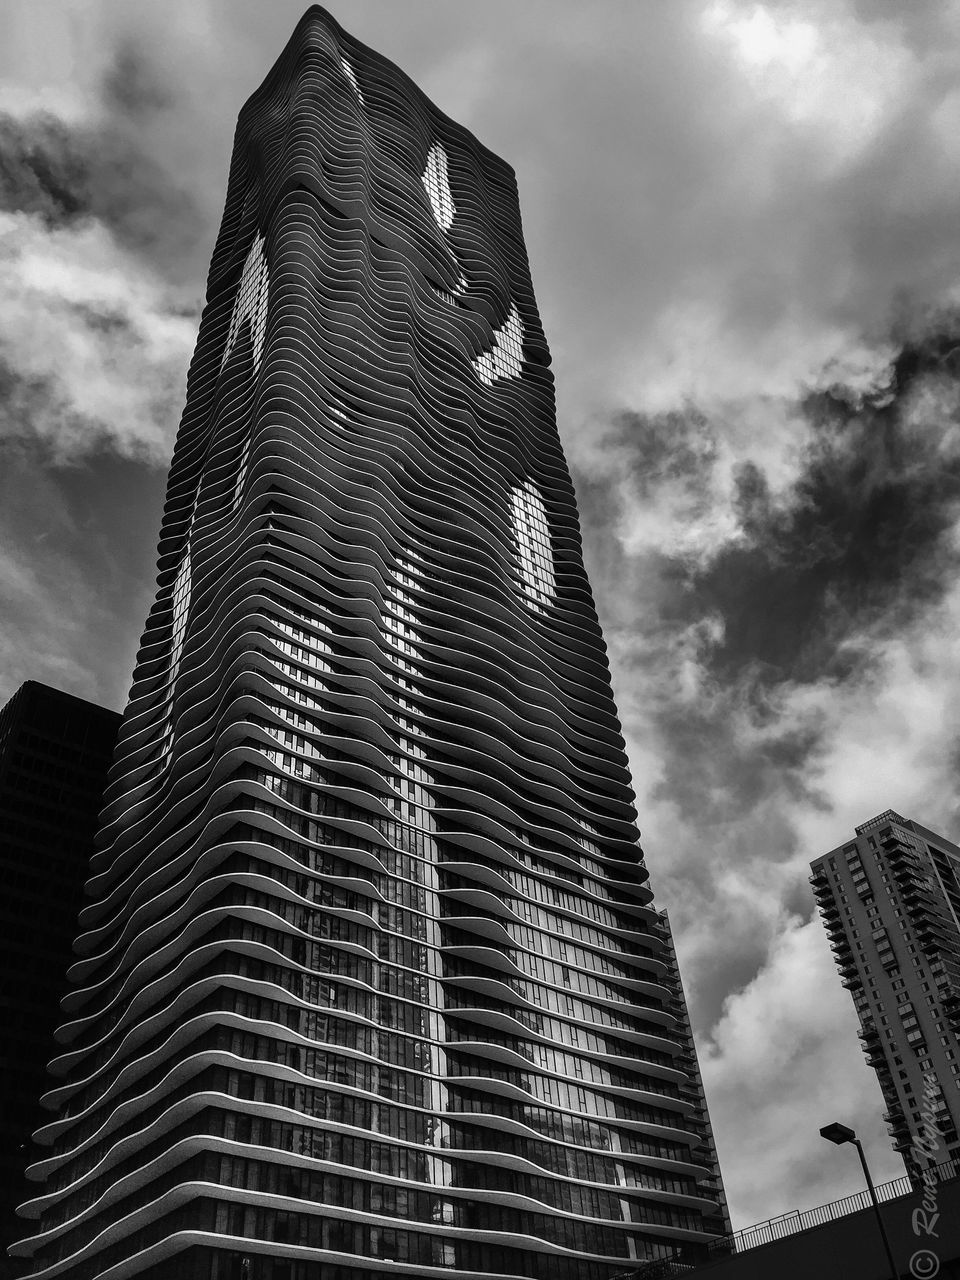 architecture, low angle view, skyscraper, building exterior, built structure, modern, tall - high, tower, sky, cloud - sky, outdoors, city, tall, no people, day